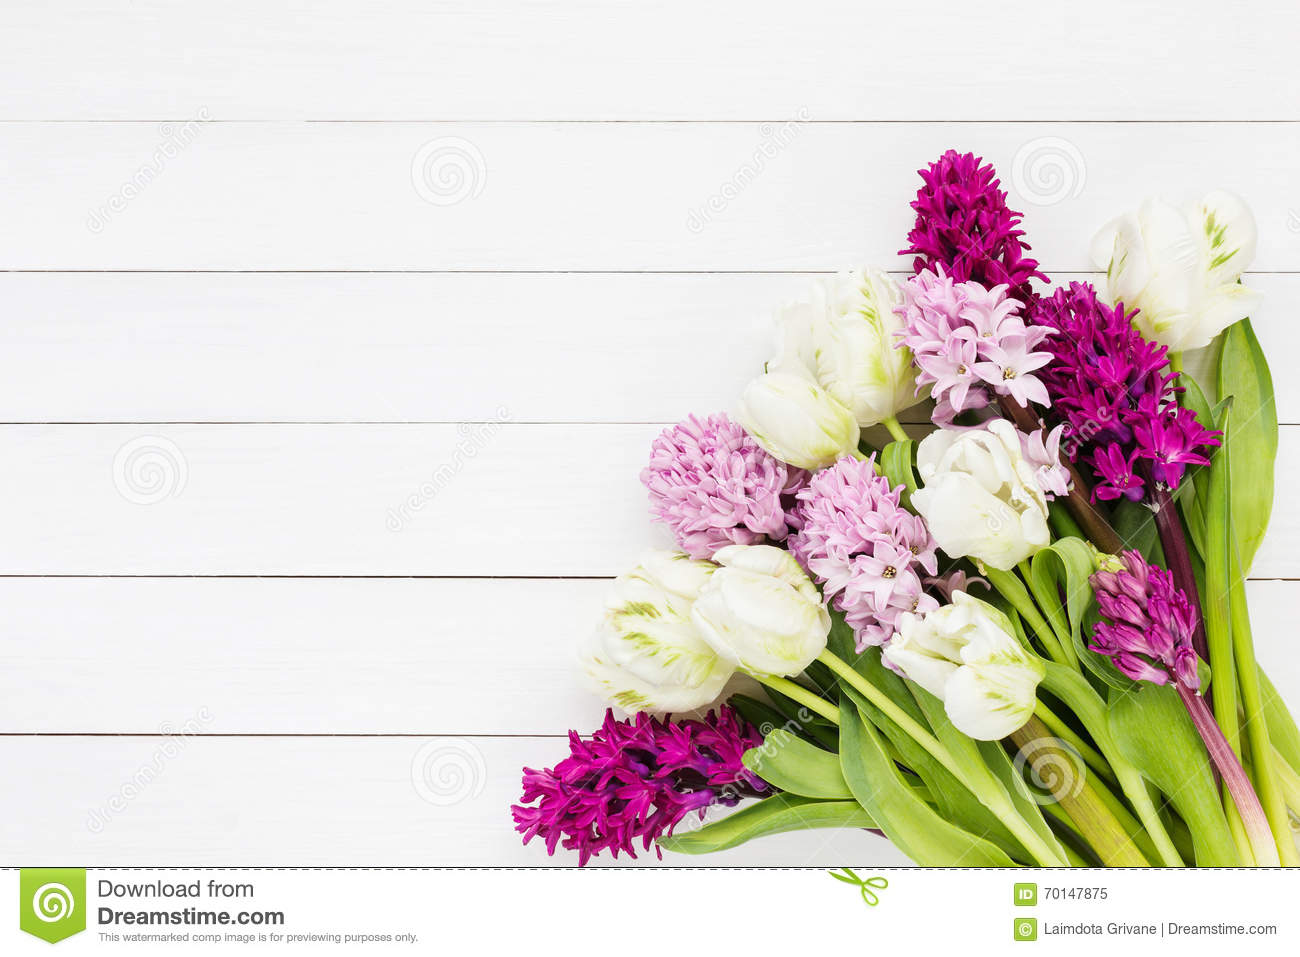 Bouquet of pink hyacinth flowers and white tulips on white wooden background bouquet flowers hyacinth dhlflorist Choice Image